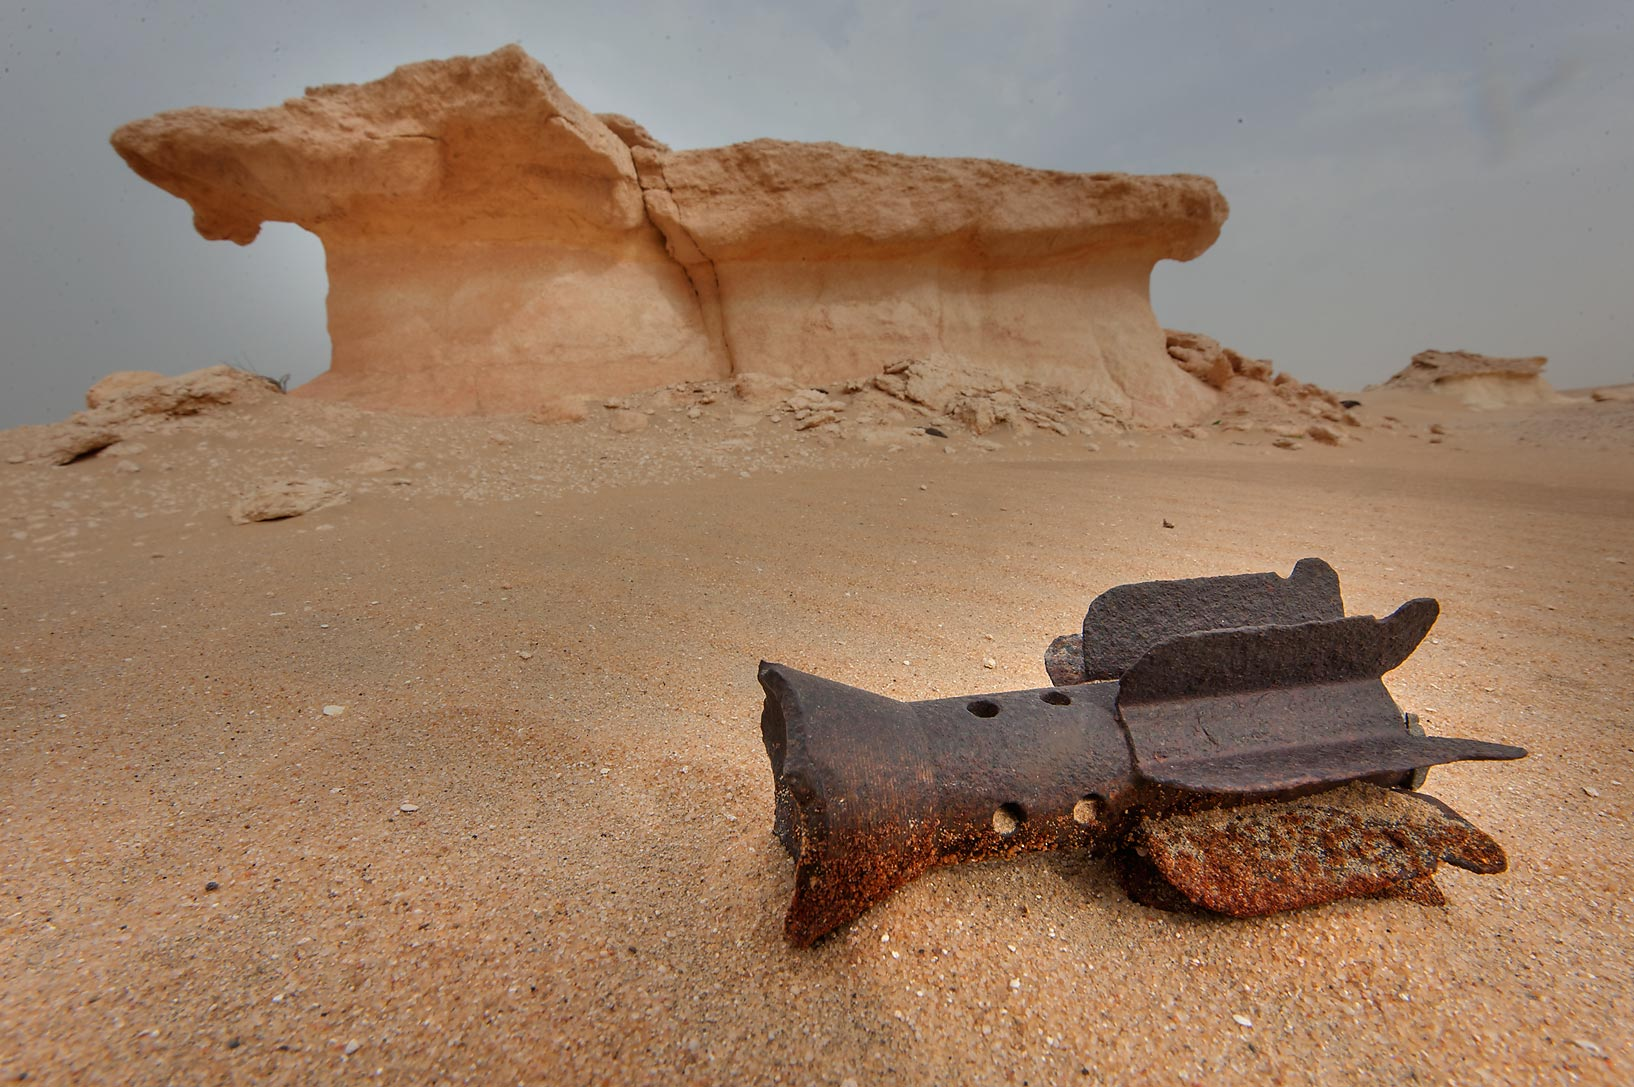 Tail of an iron rocket in area of Nakhsh Mountain near Salwa Rd. in southern Qatar